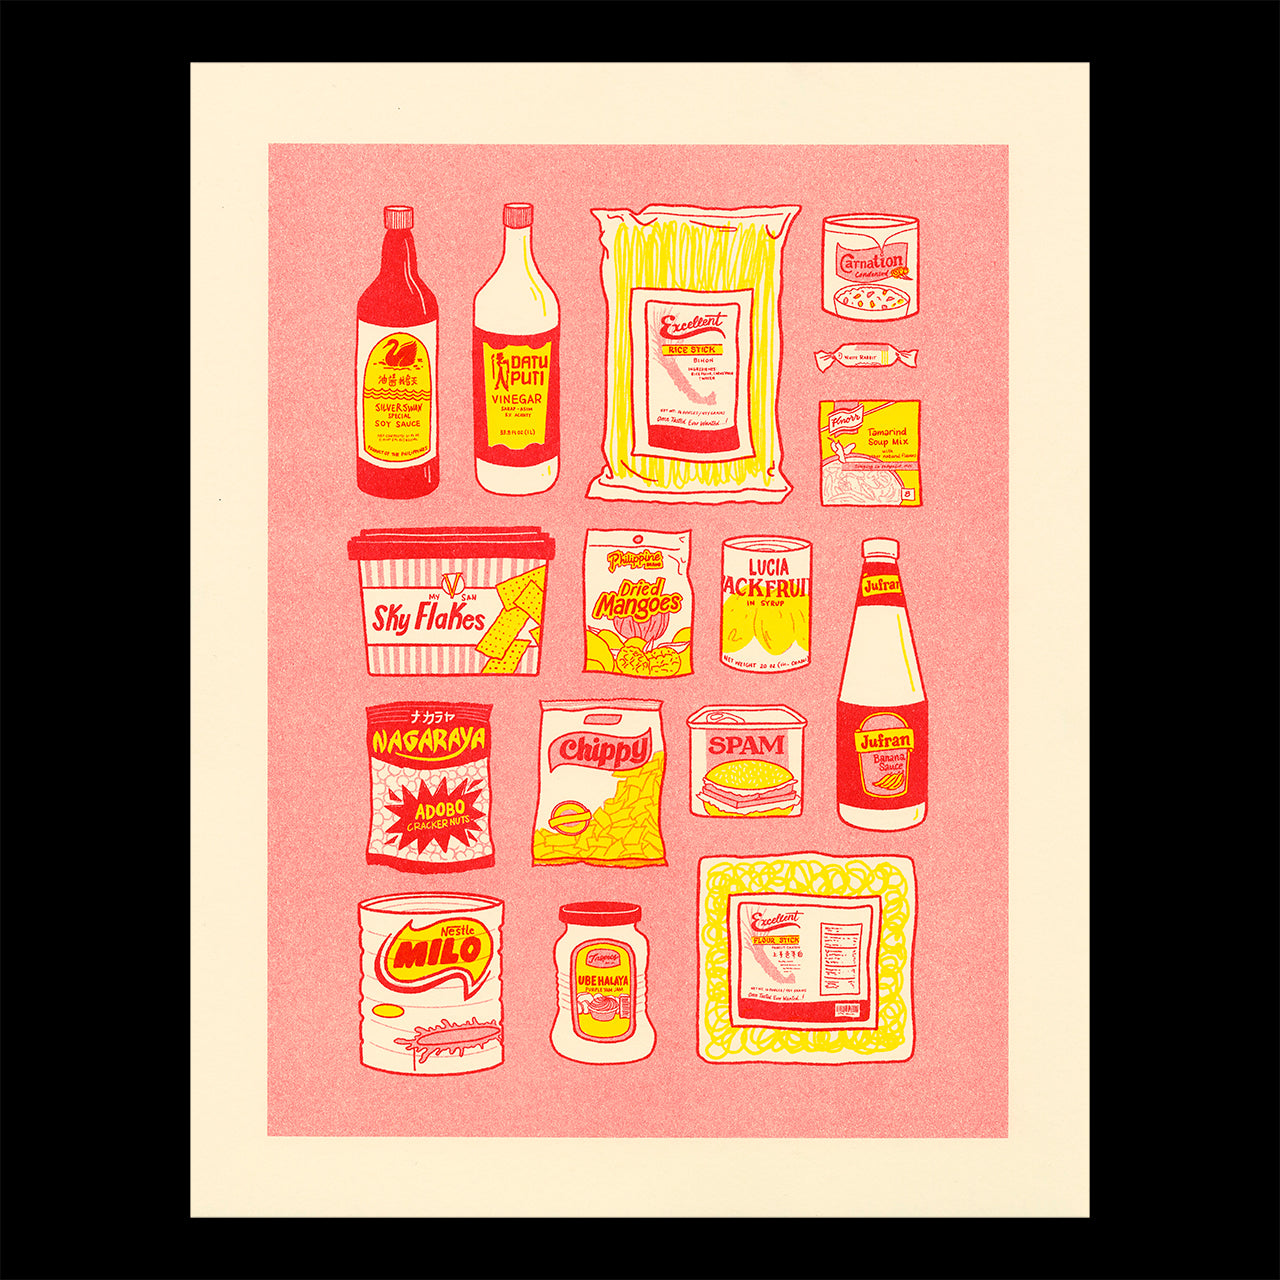 Risograph printed illustration showing common items found in the pantry of a Filipinx home